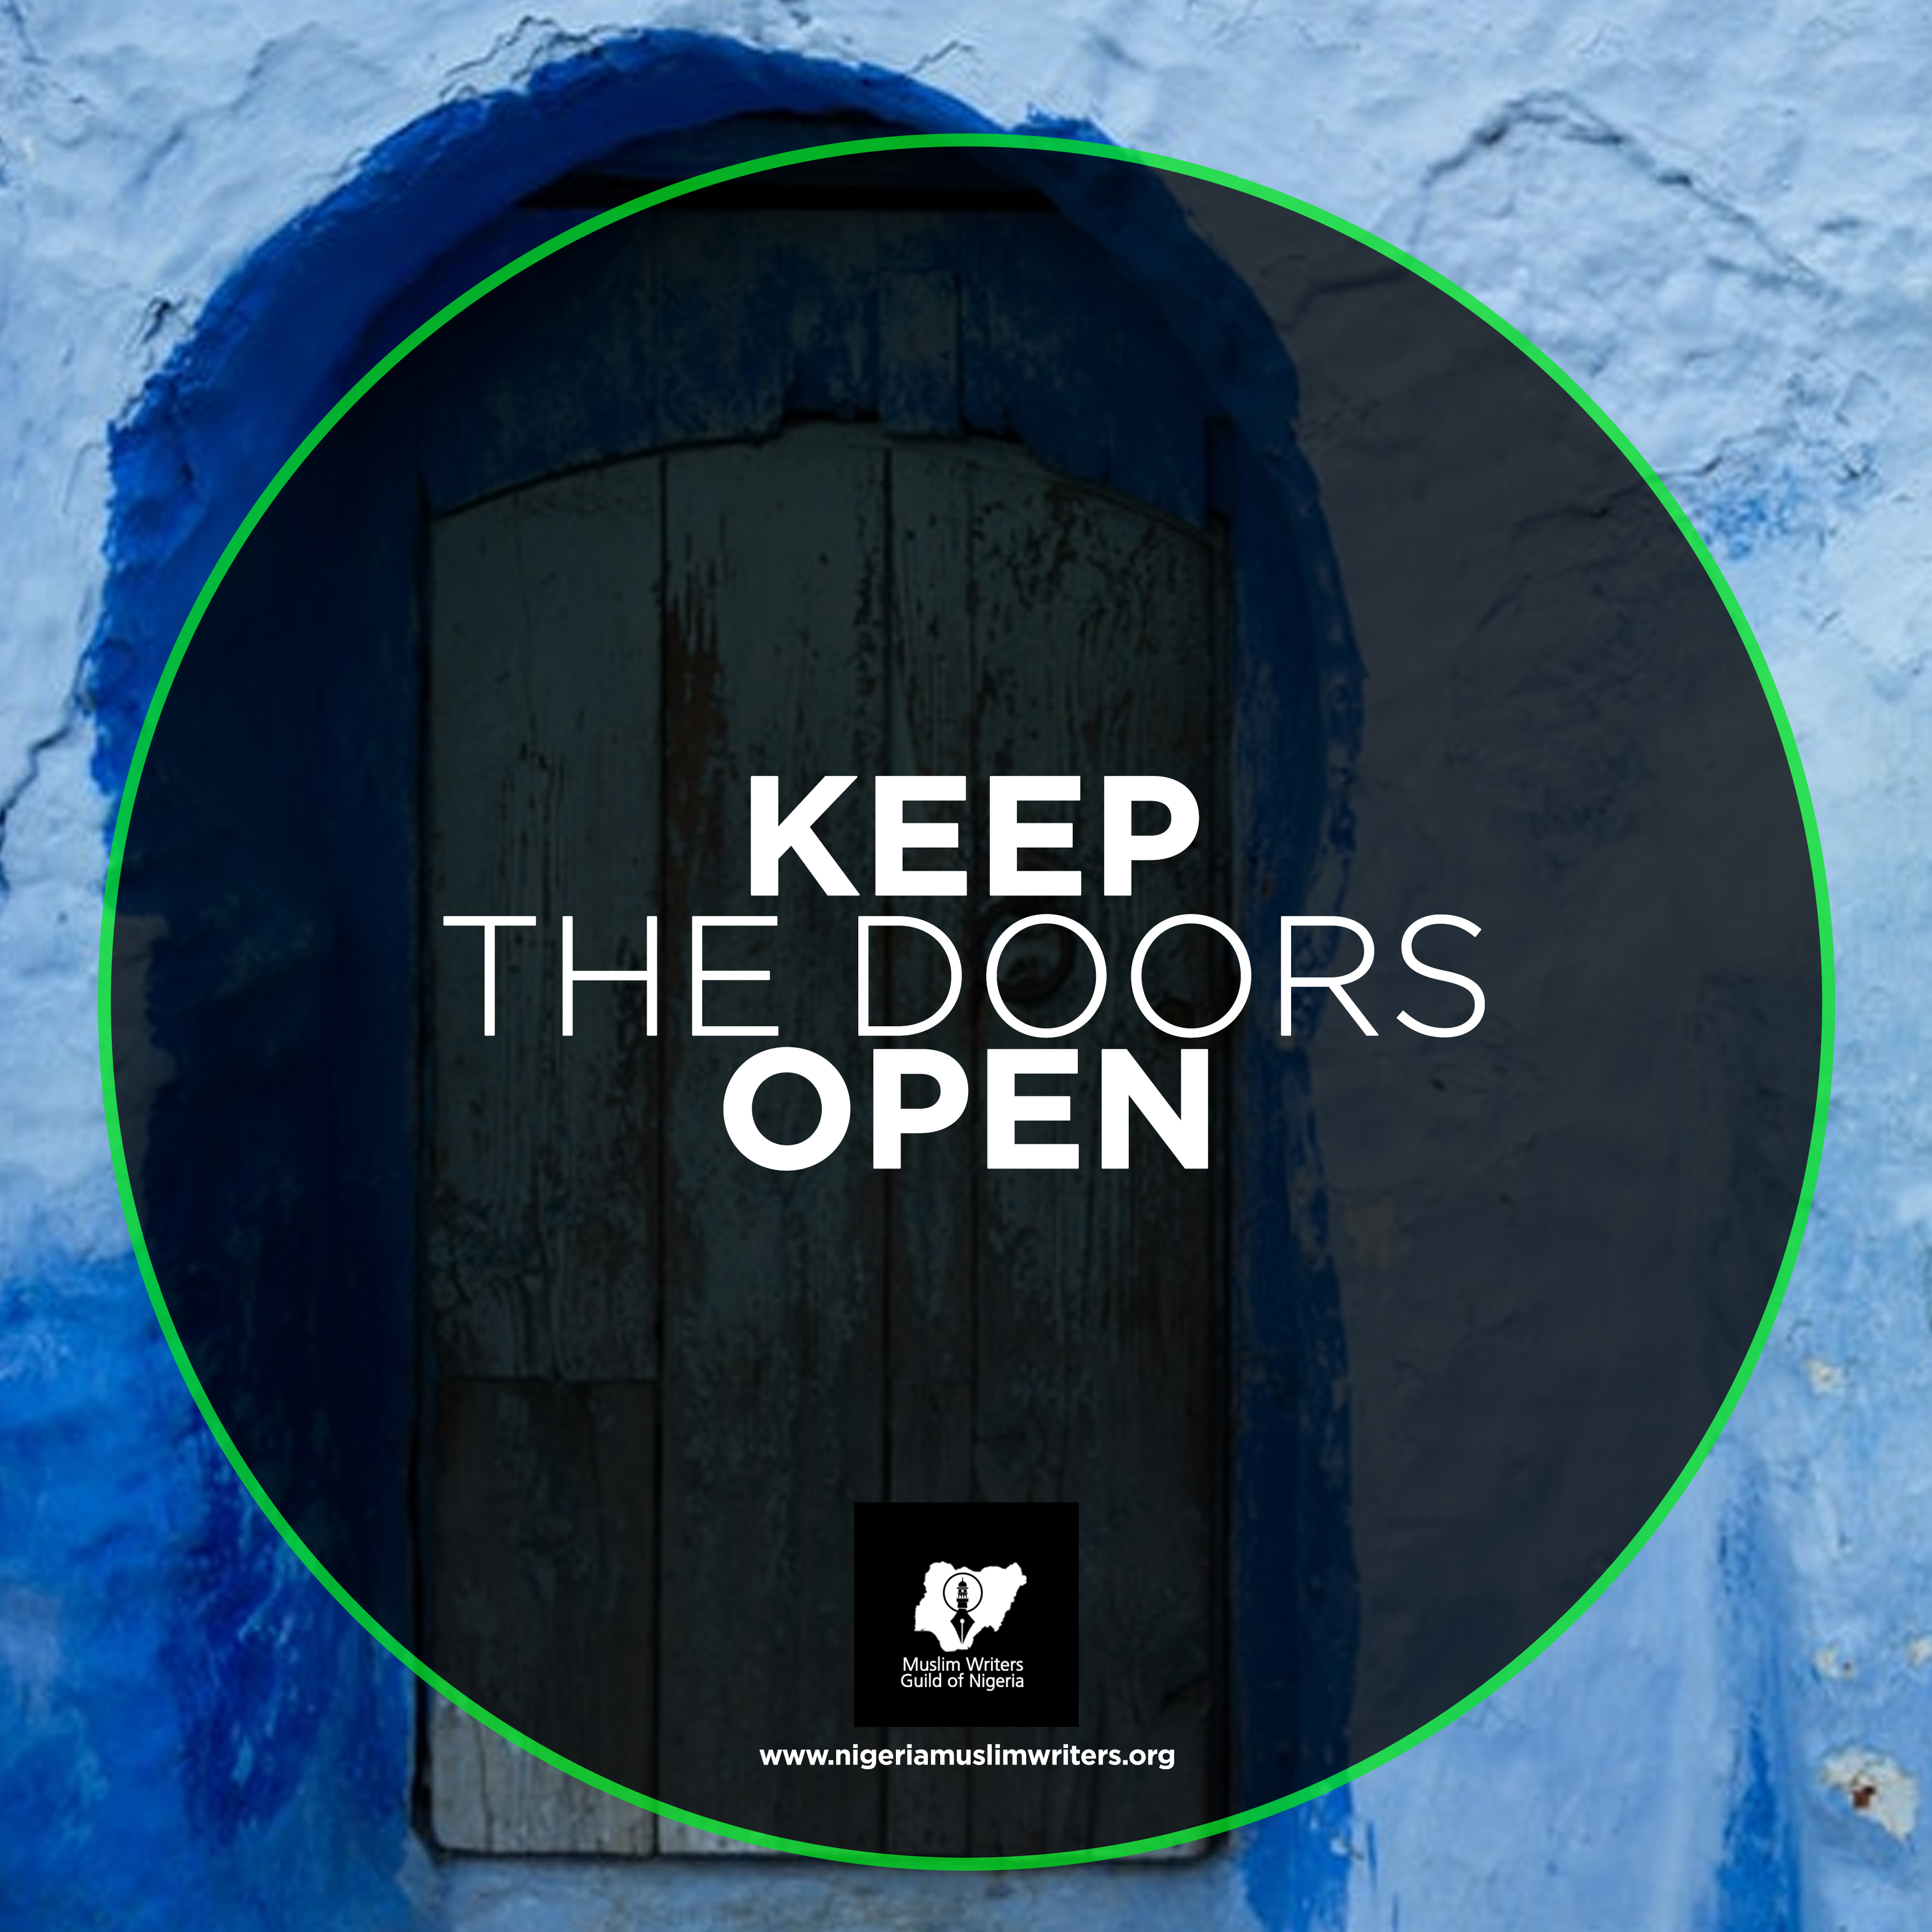 KEEP THE DOORS OPEN